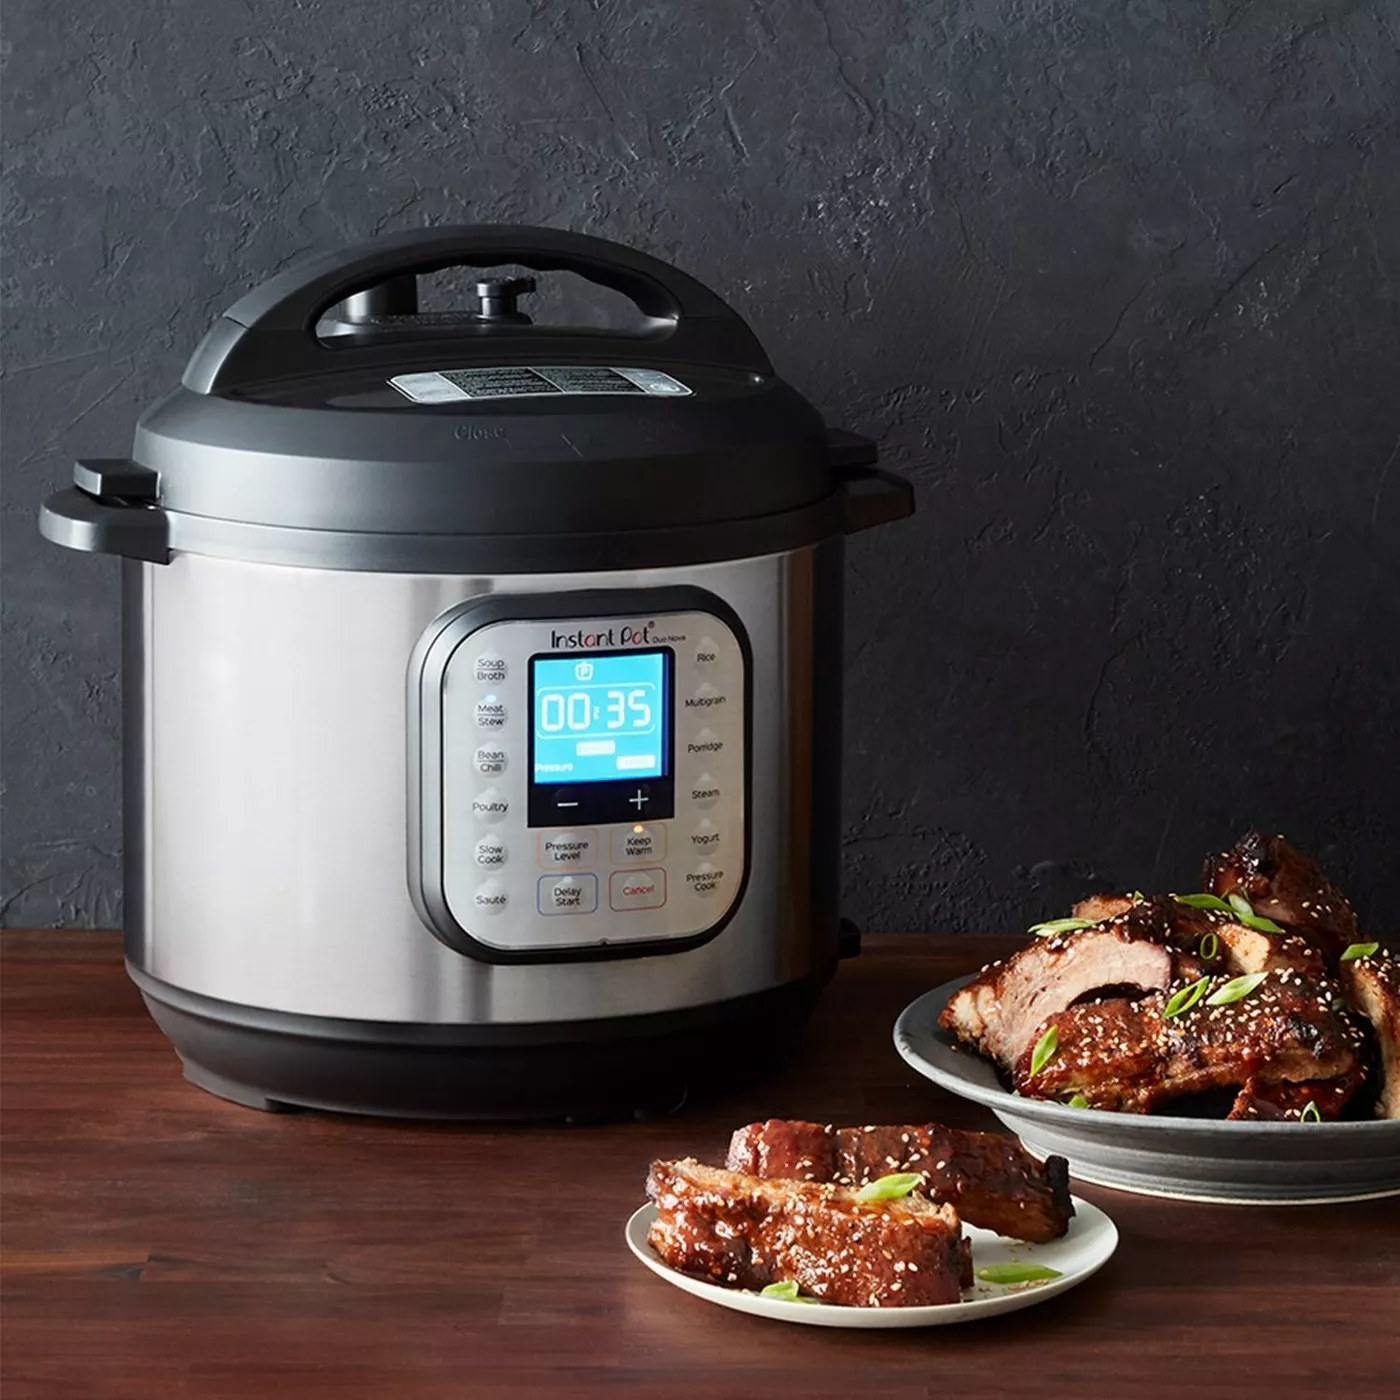 An Instant Pot next to plates of ribs